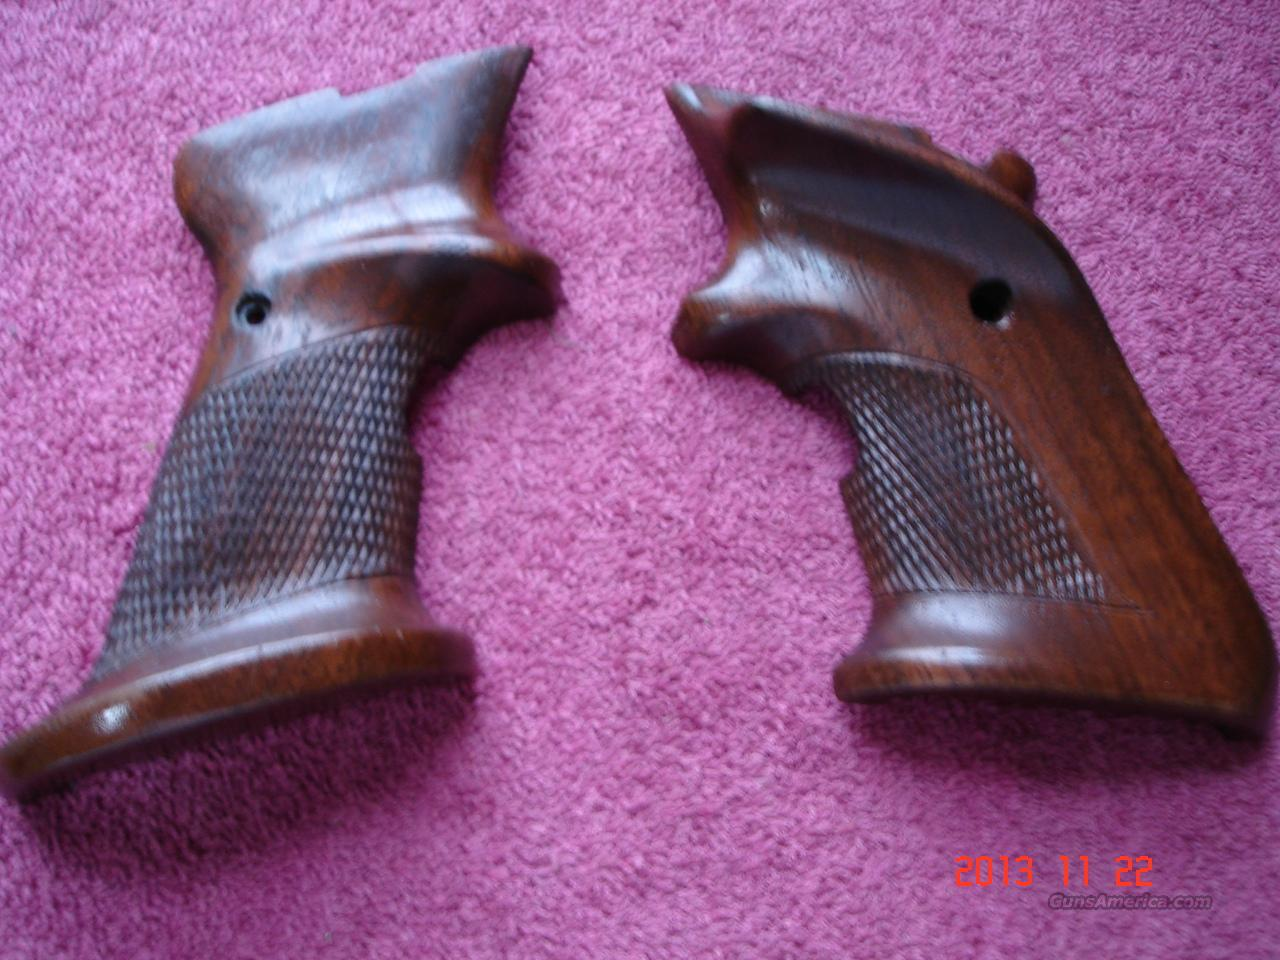 HI-Std Herrett's target for Mod104 ETC  Non-Guns > Gunstocks, Grips & Wood